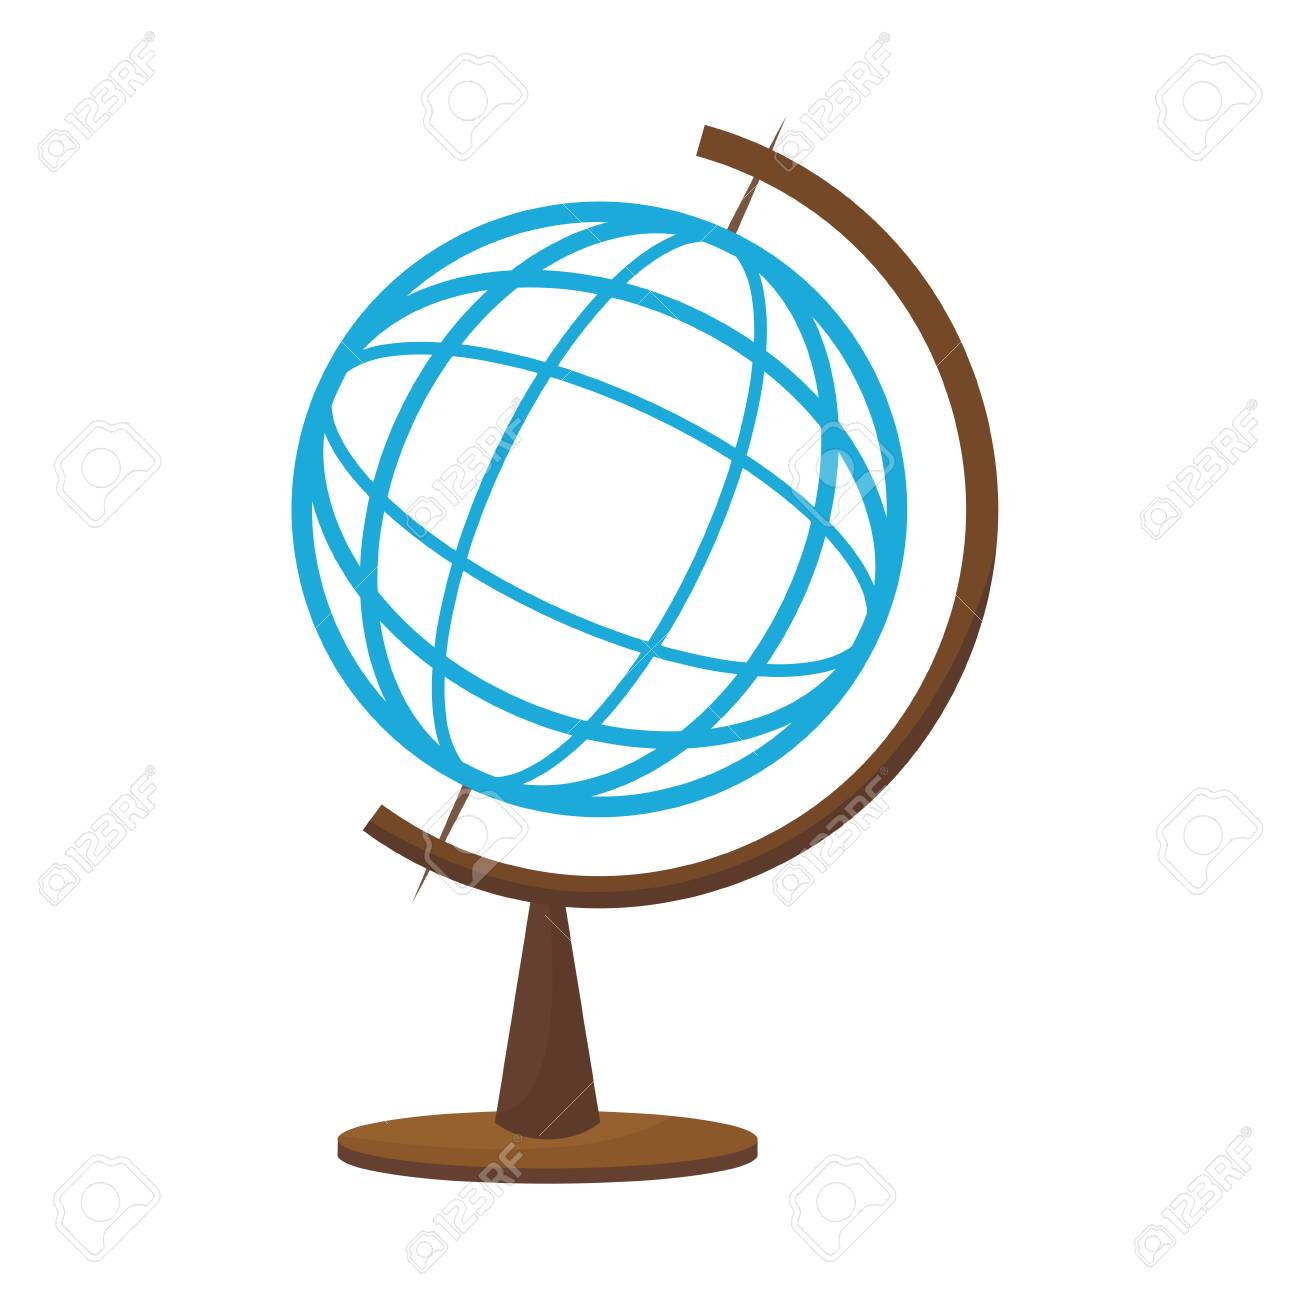 School globe map atlas world icon vector illustration royalty free school globe map atlas world icon vector illustration stock vector 80579526 gumiabroncs Image collections